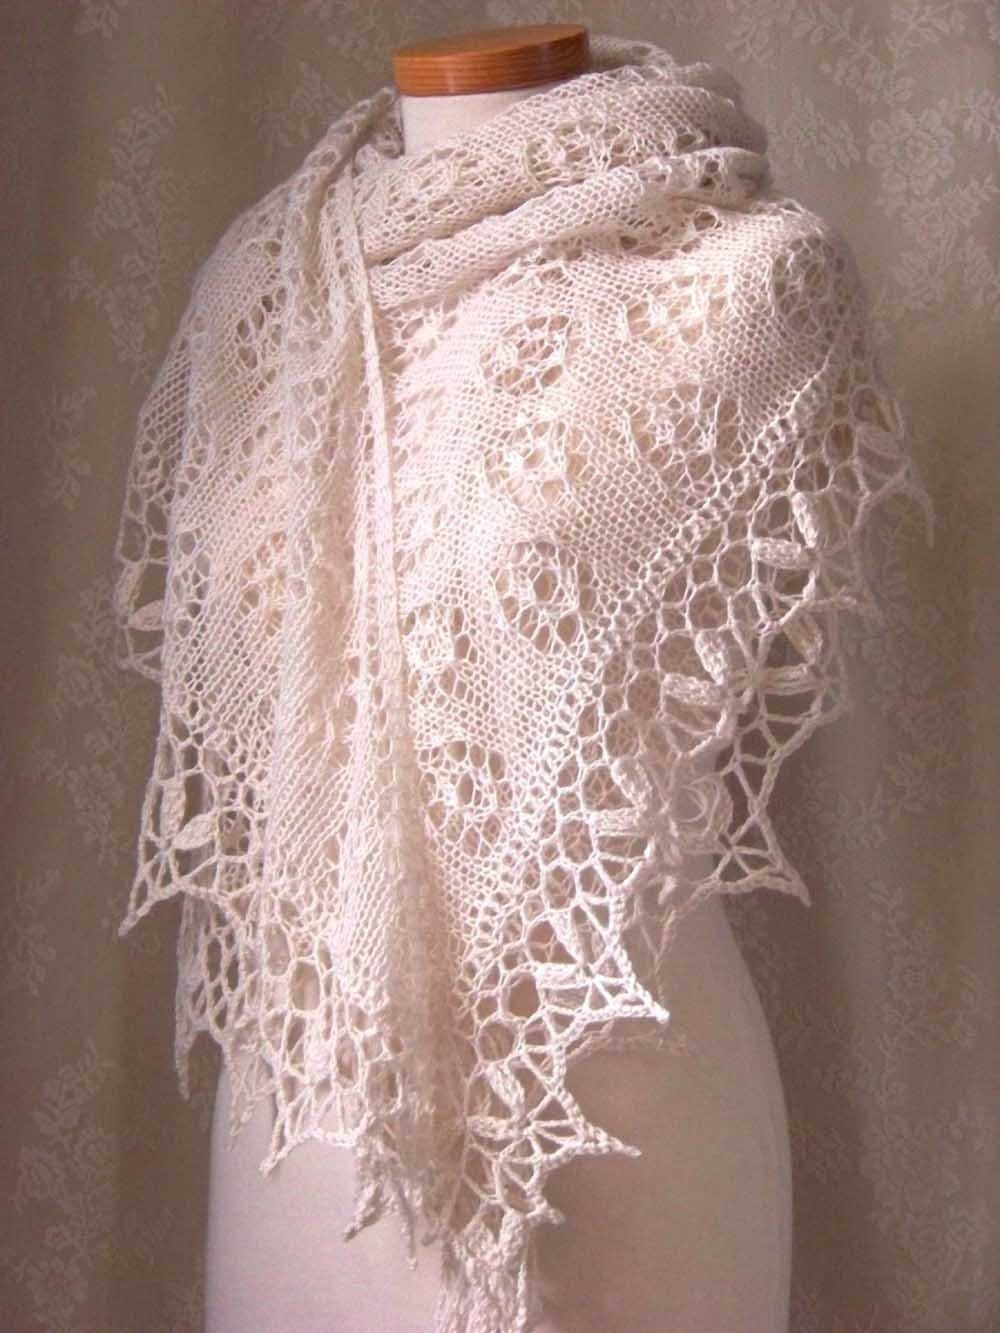 Unique Knitting Crochet Pattern Creme Lace Knitted Shawl with Crochet Lace Shawl Pattern Of Amazing 45 Models Crochet Lace Shawl Pattern